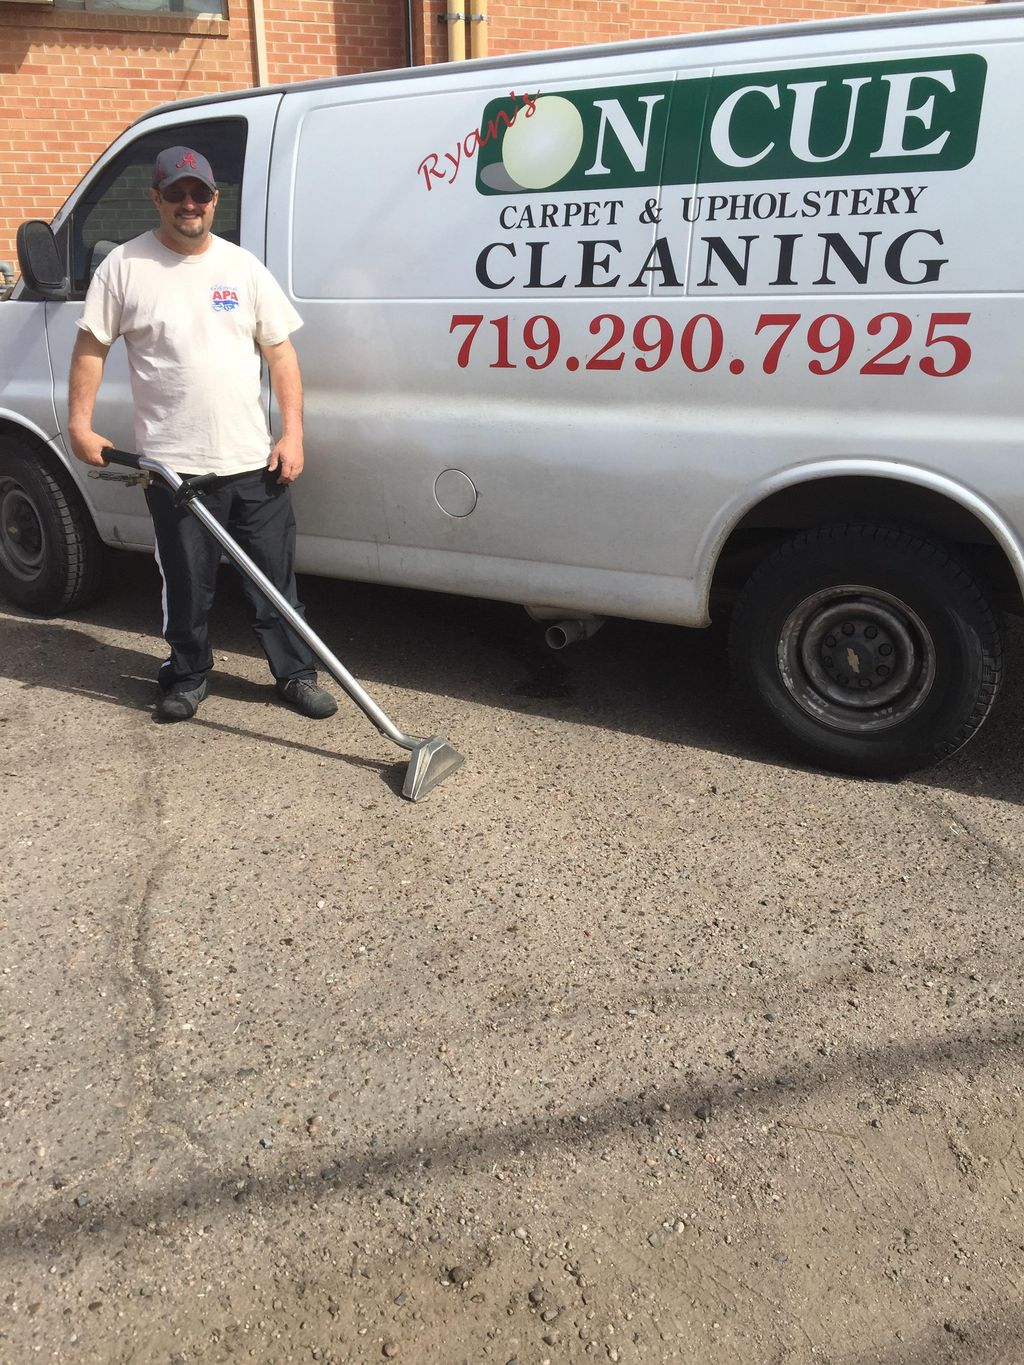 Ryan's on cue carpet cleaning